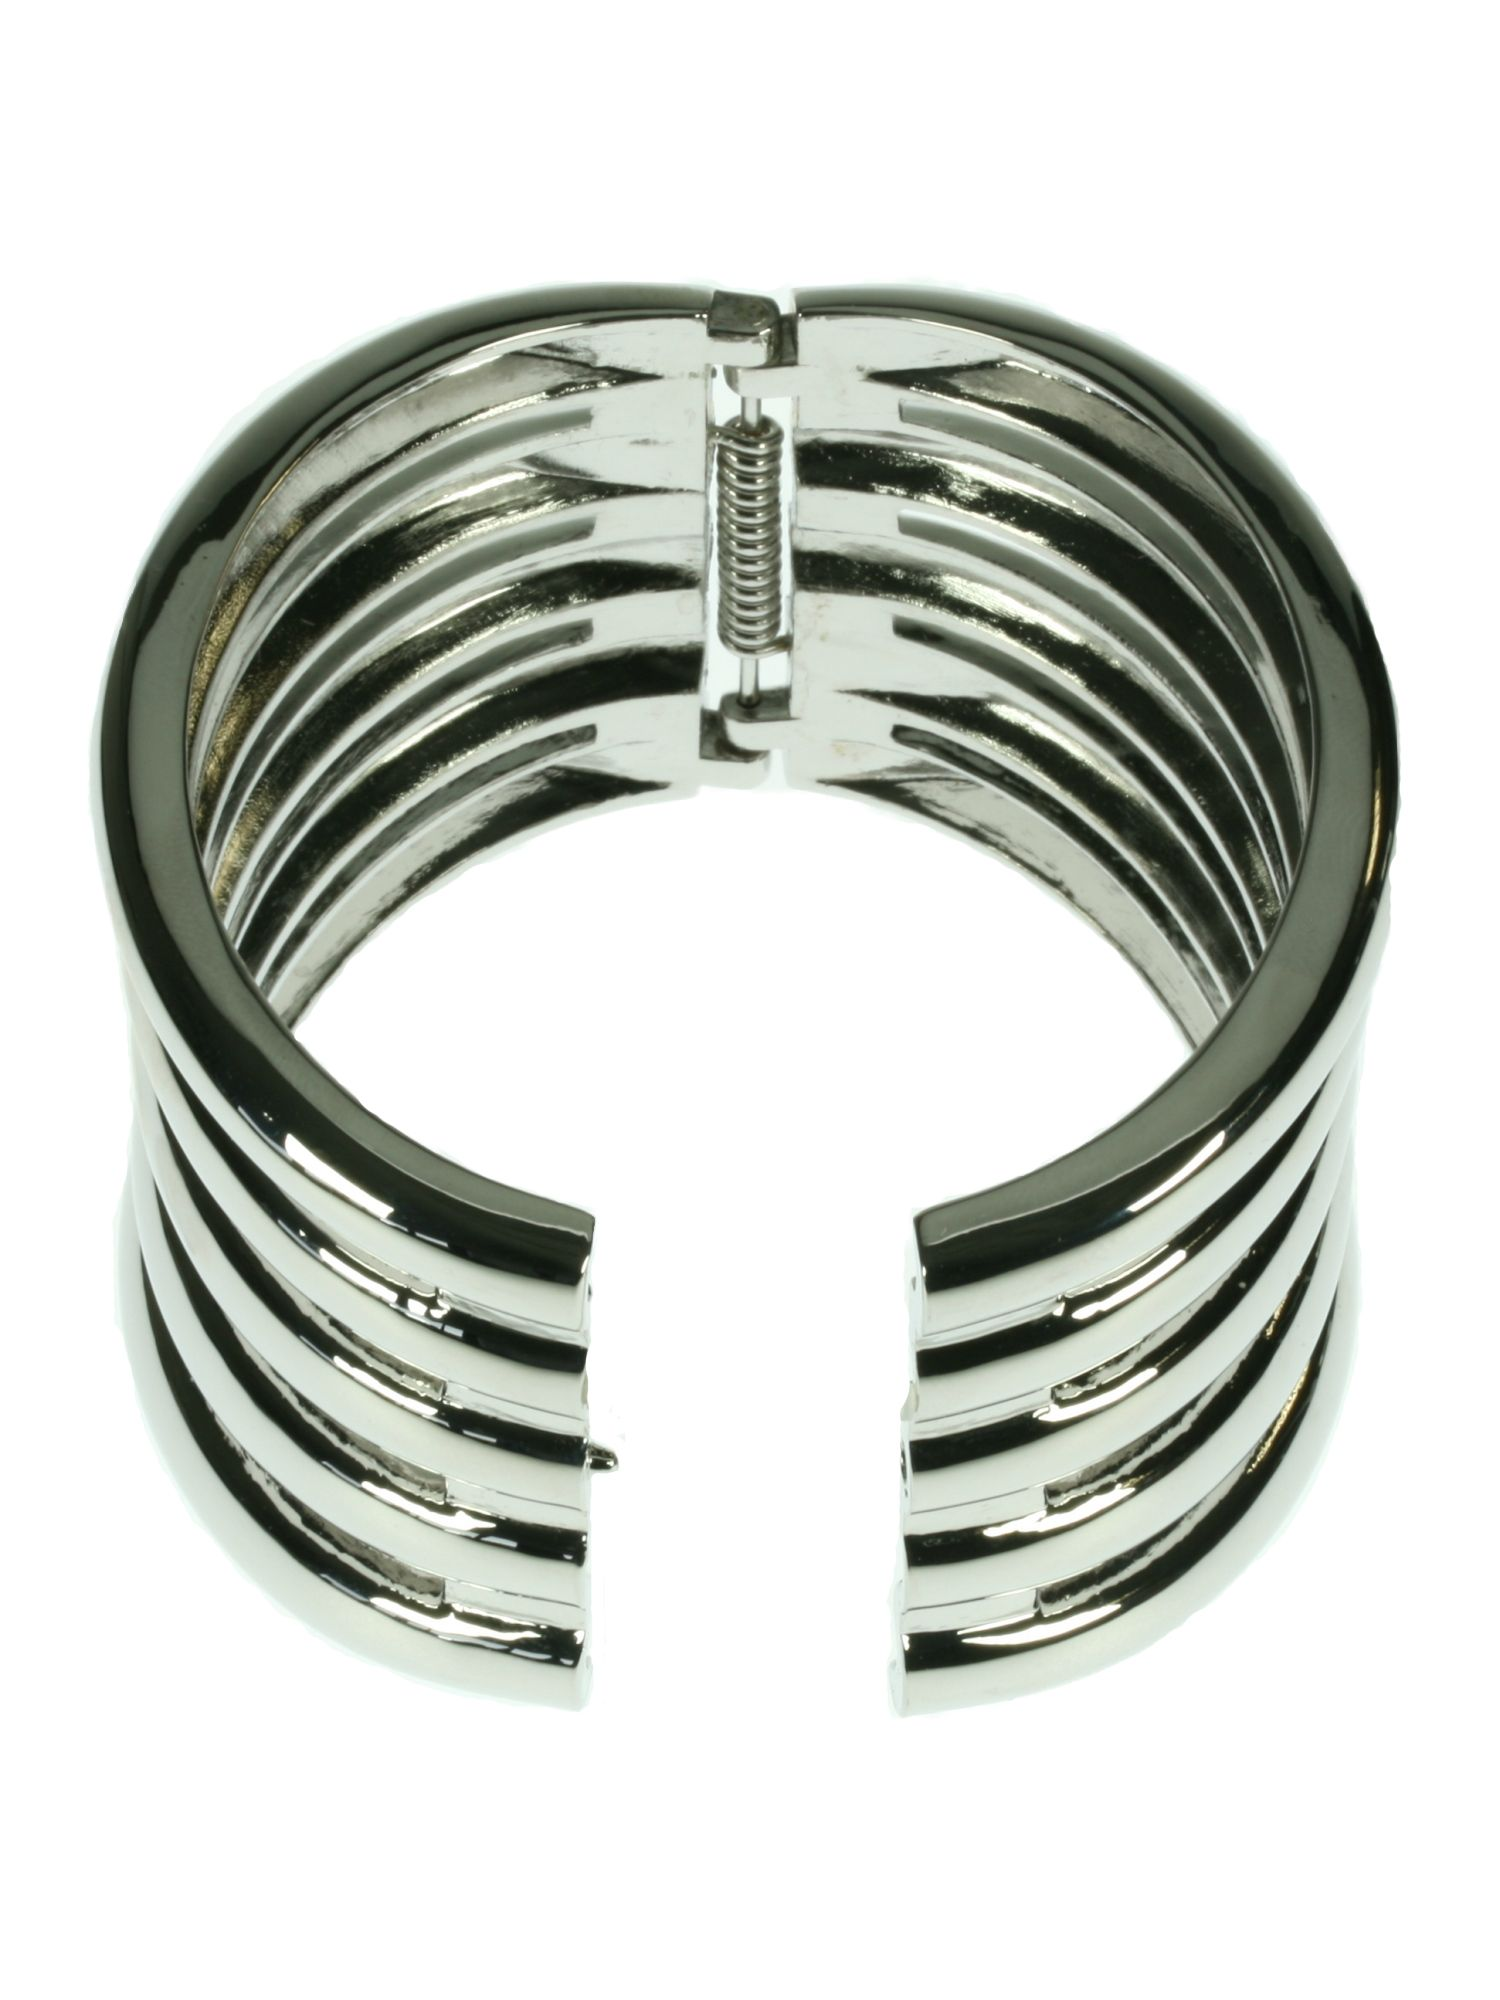 Rhodium plated coil bangle